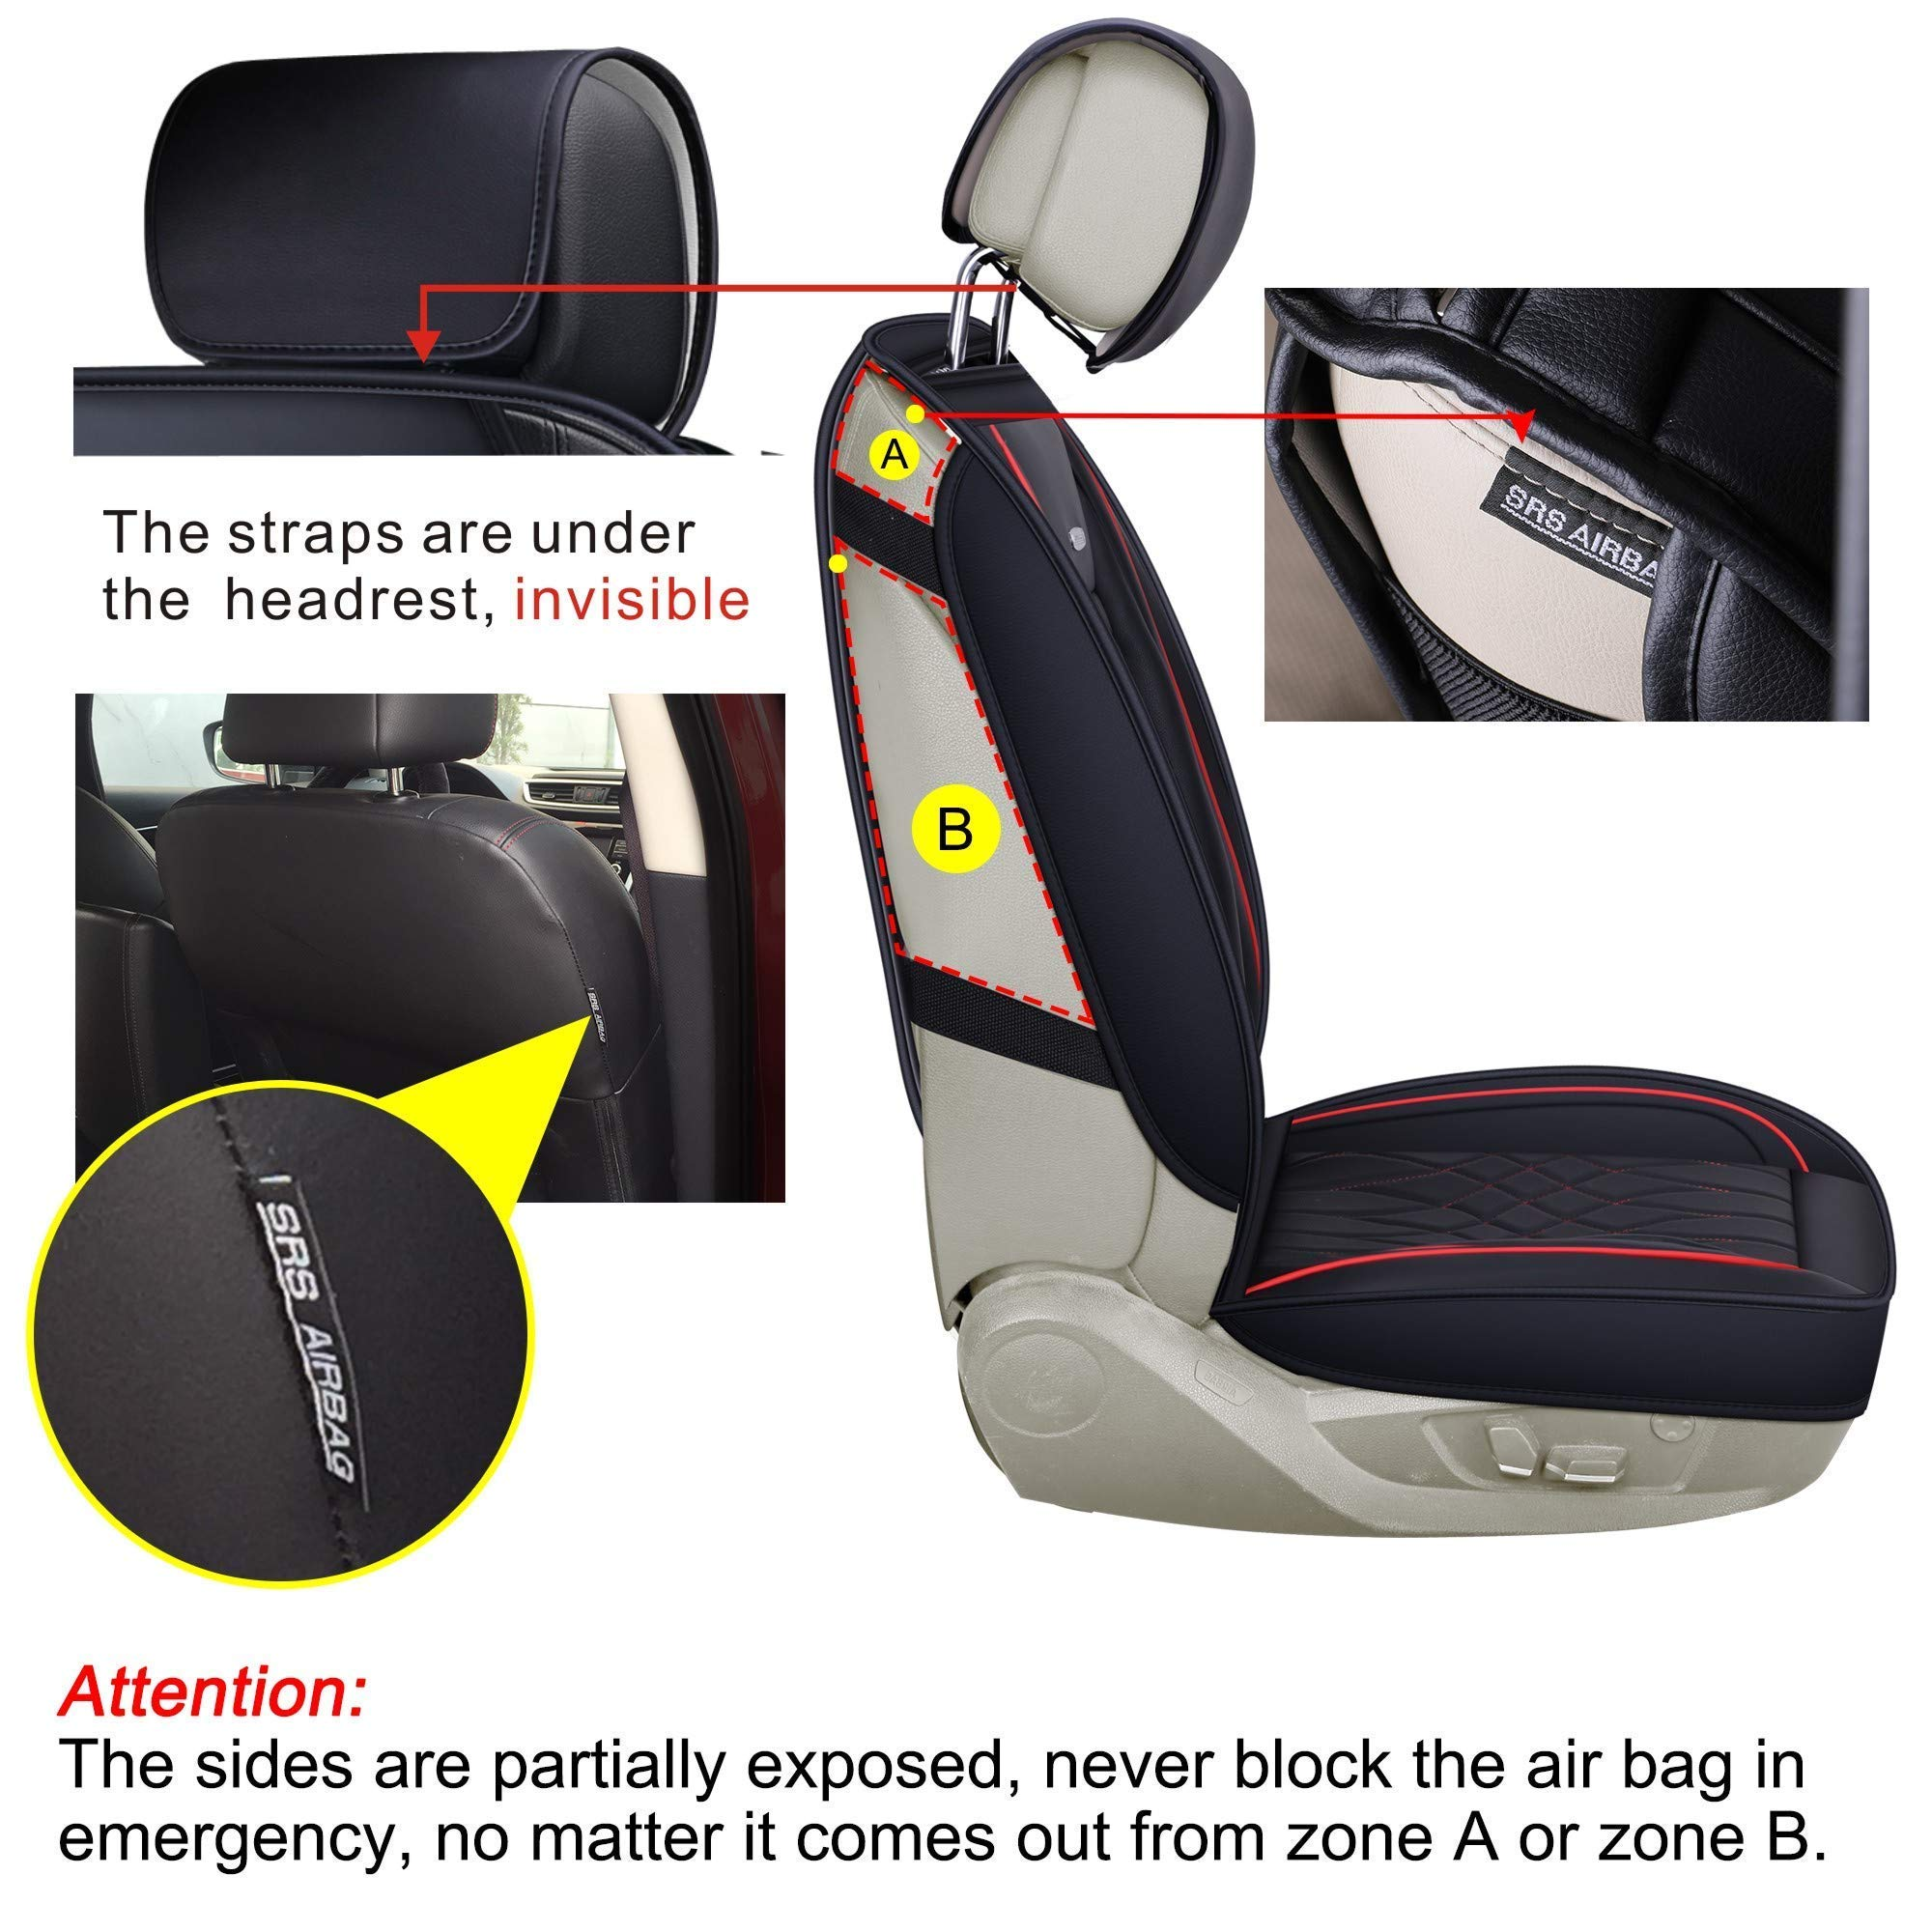 Piping Lights Up with Music,Airbag Compatible with USB Connection Truck CAR PASS Waterproof Car Seat Covers with LED Light Fit Most Car Black,1 Piece SUV Van